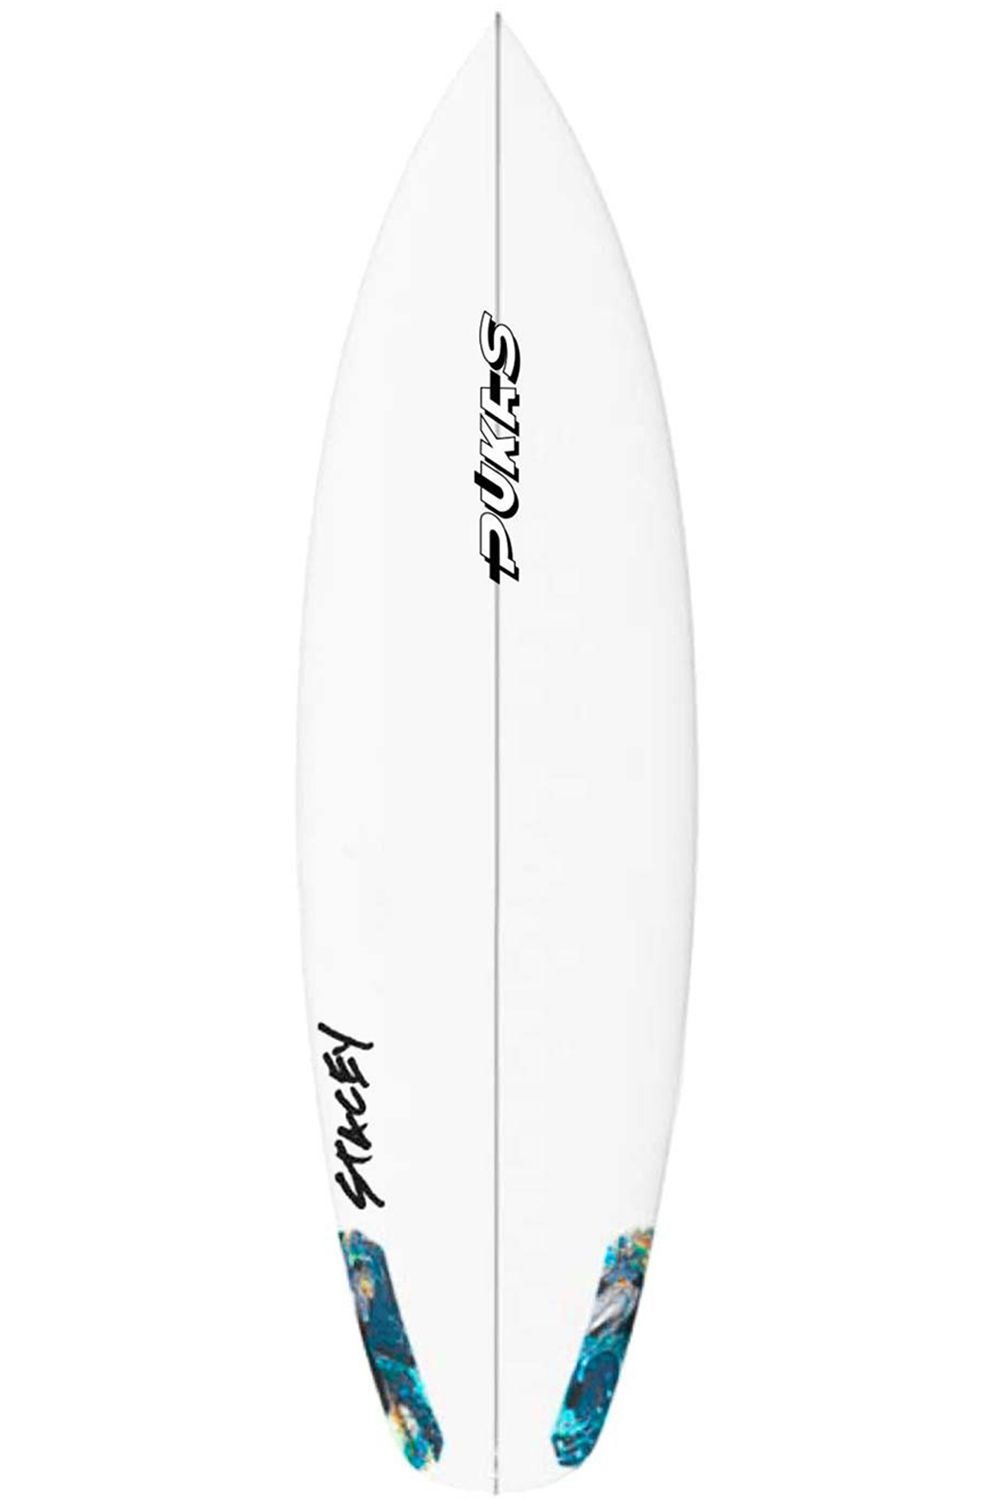 Pukas Surf Board 5'10 WAVE SLAVE Squash Tail - White FCS II 5ft10